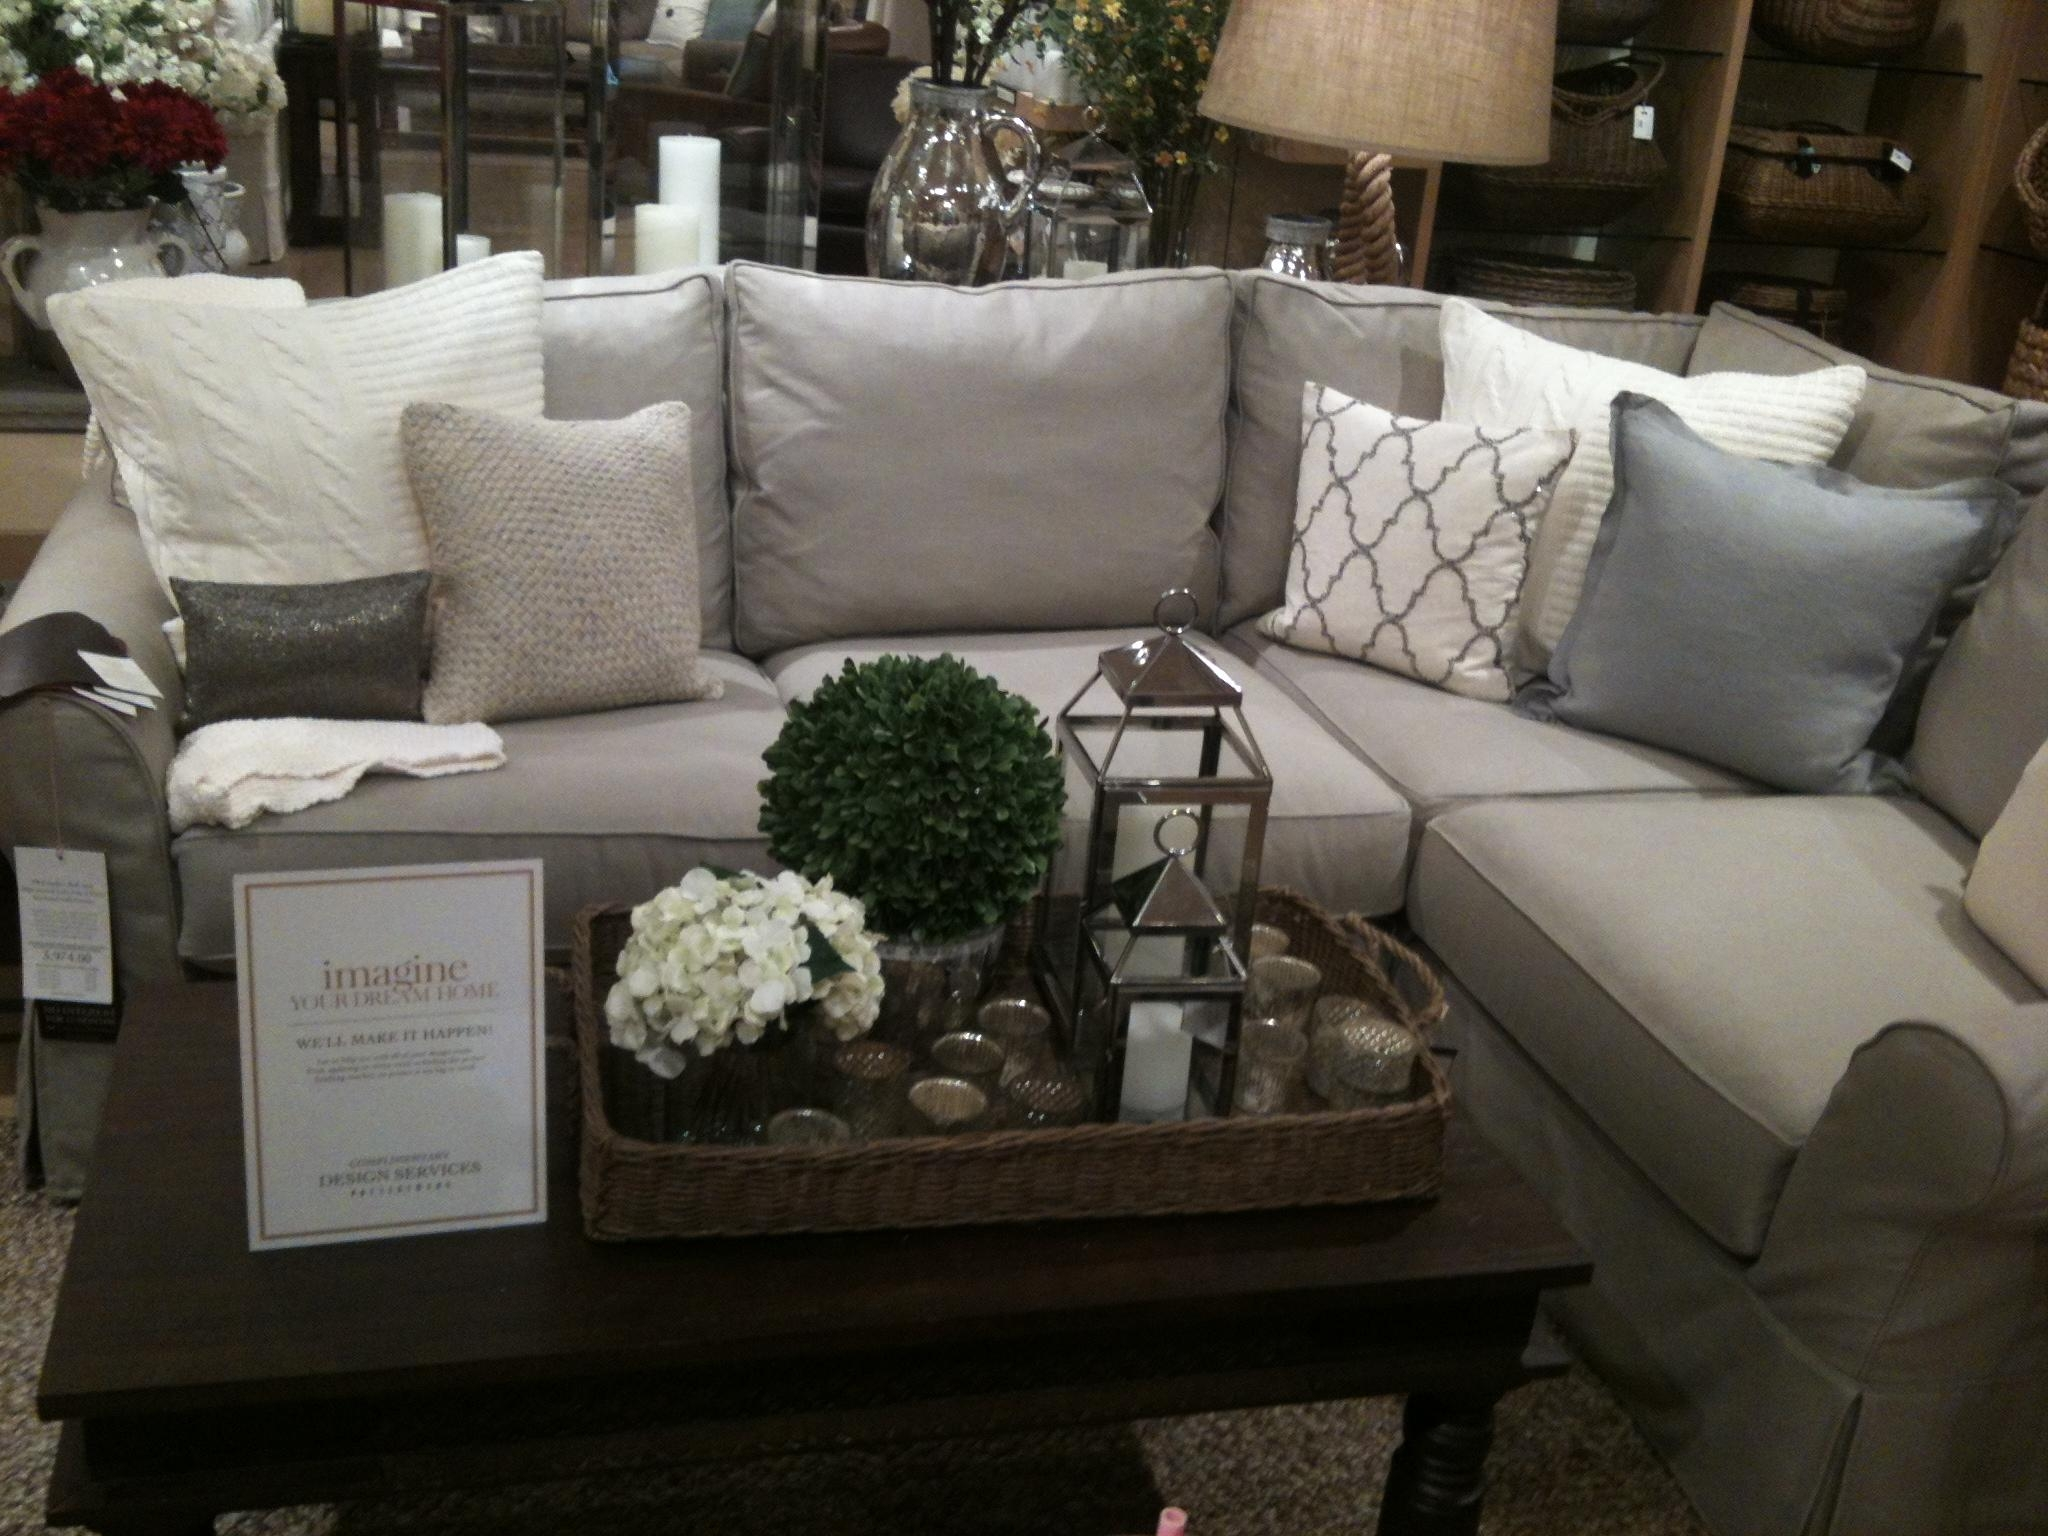 Decor: Jcpenney Slipcovers | Pottery Barn Sofa | Individual Couch Intended For Individual Couch Seat Cushion Covers (View 11 of 20)